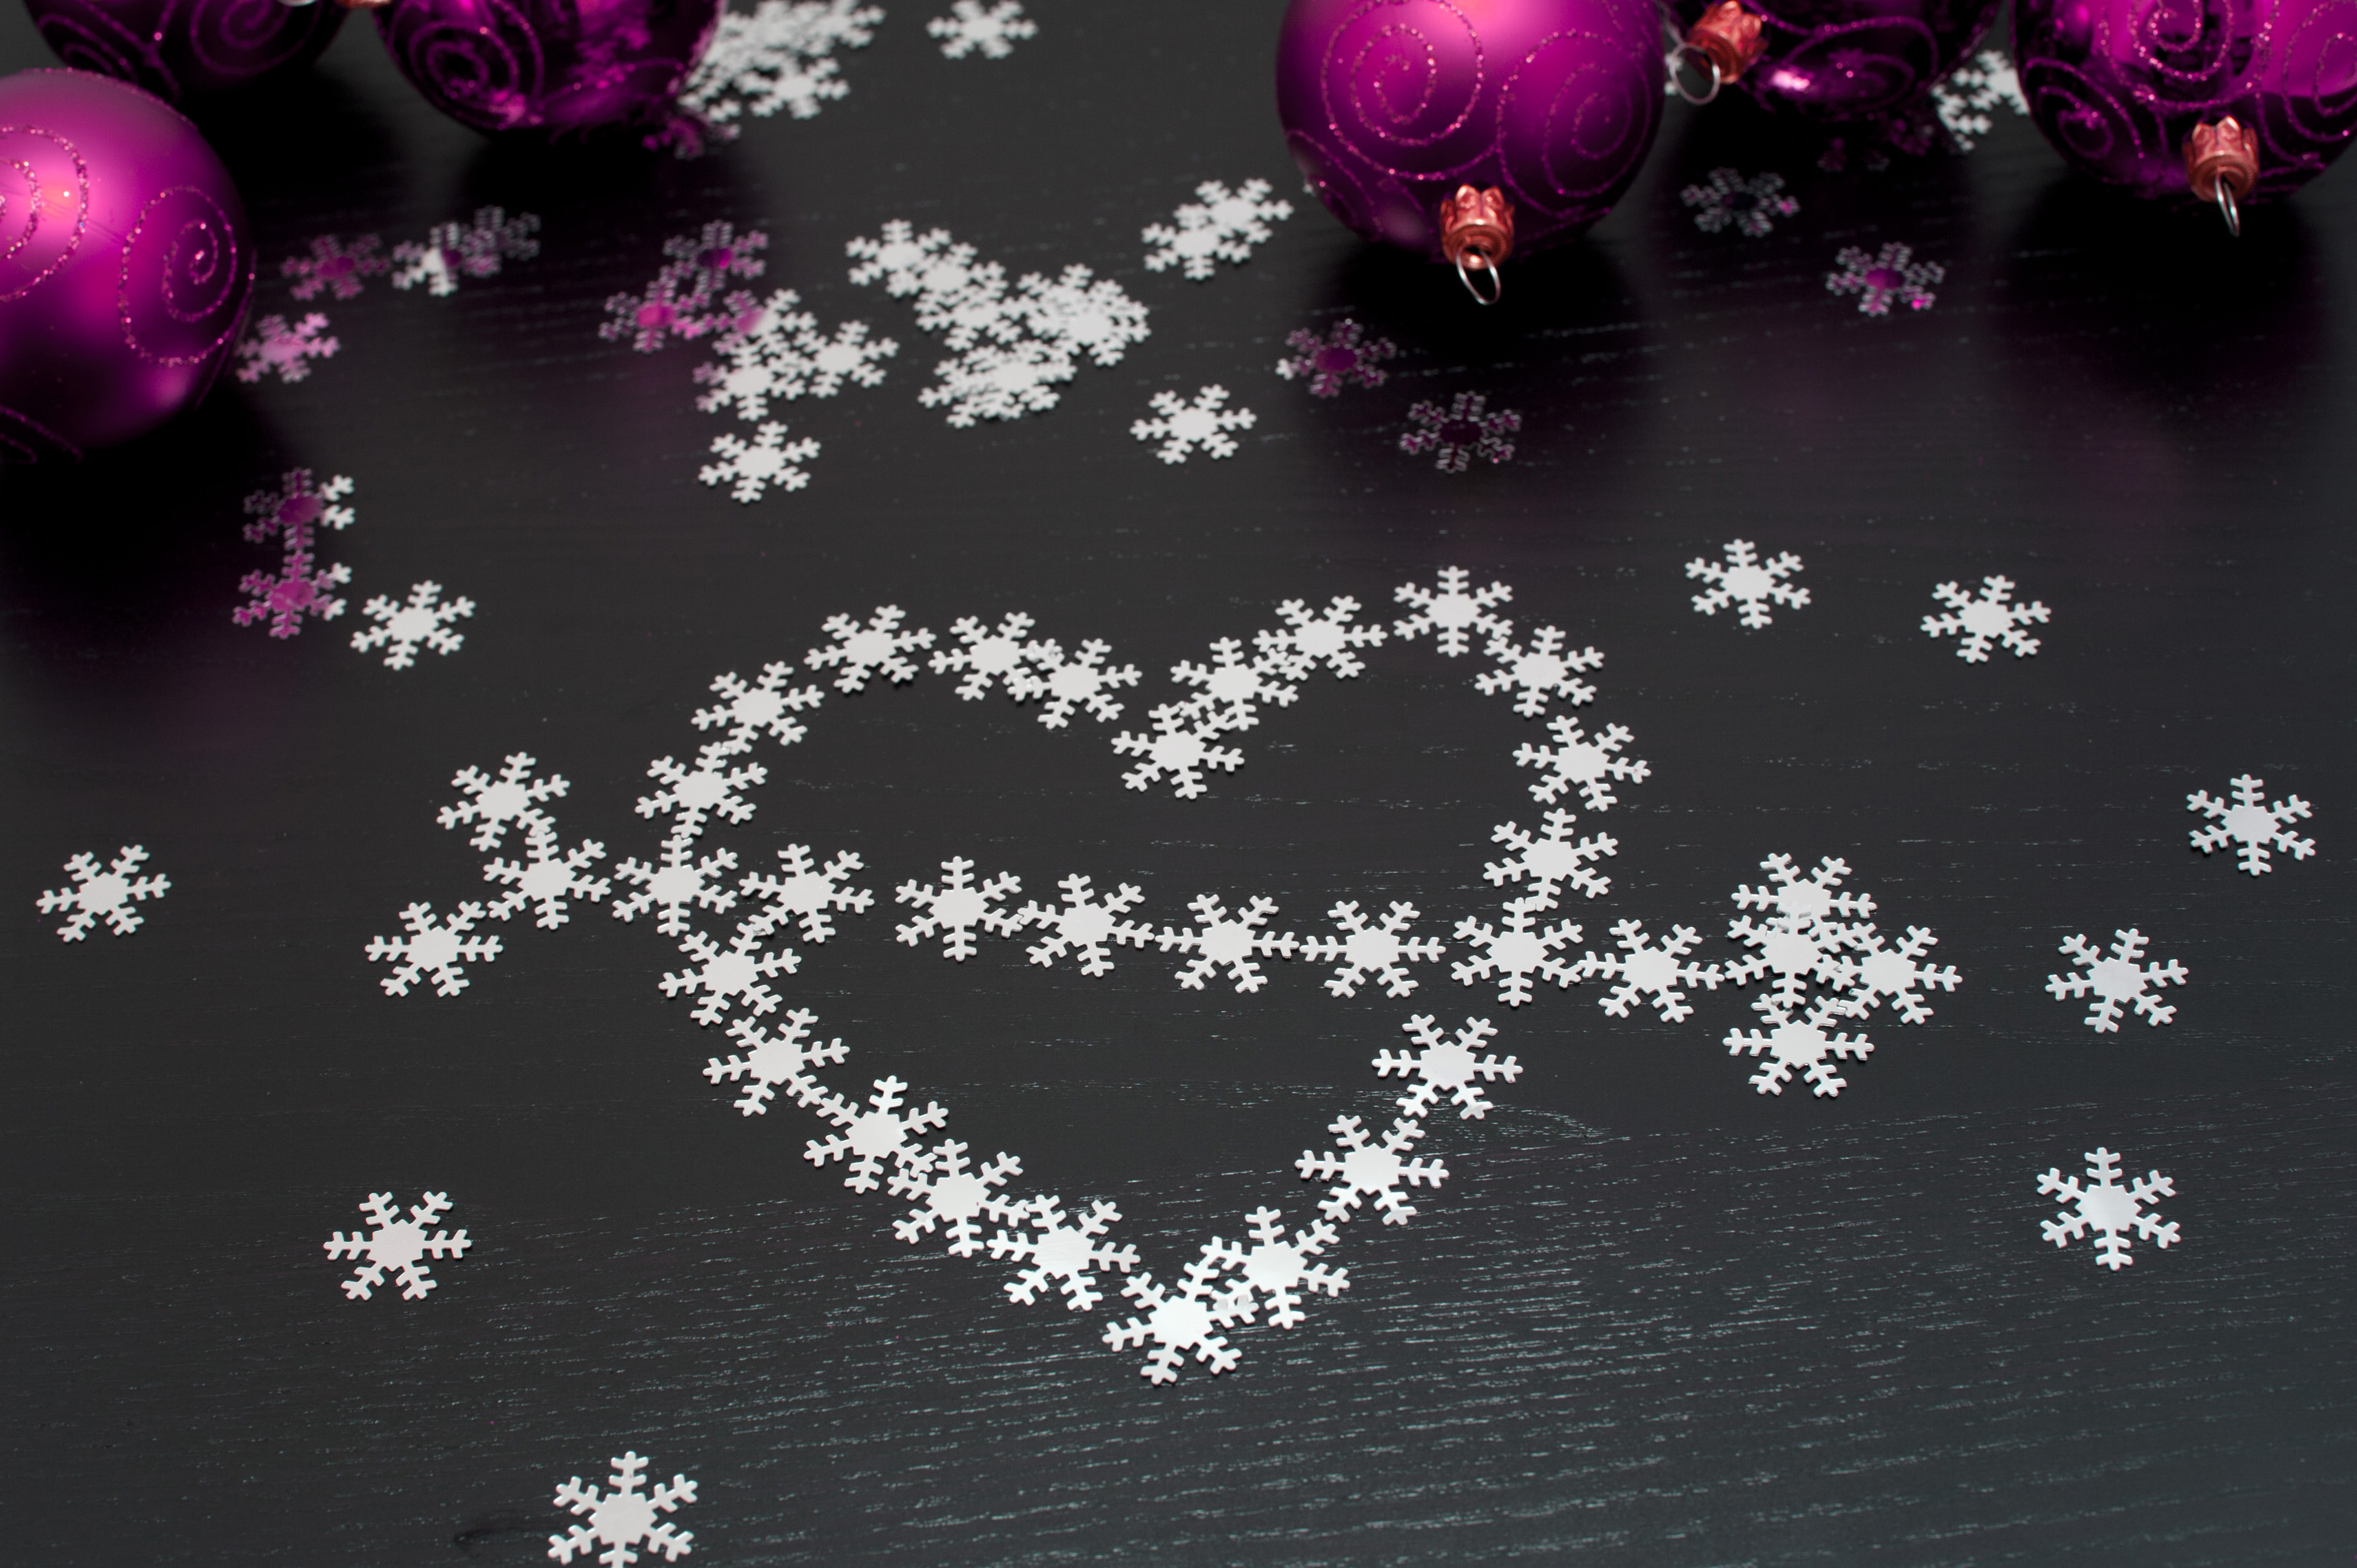 Christmas heart and arrow formed of multiple small snowflakes for your message of love and hope at Christmas